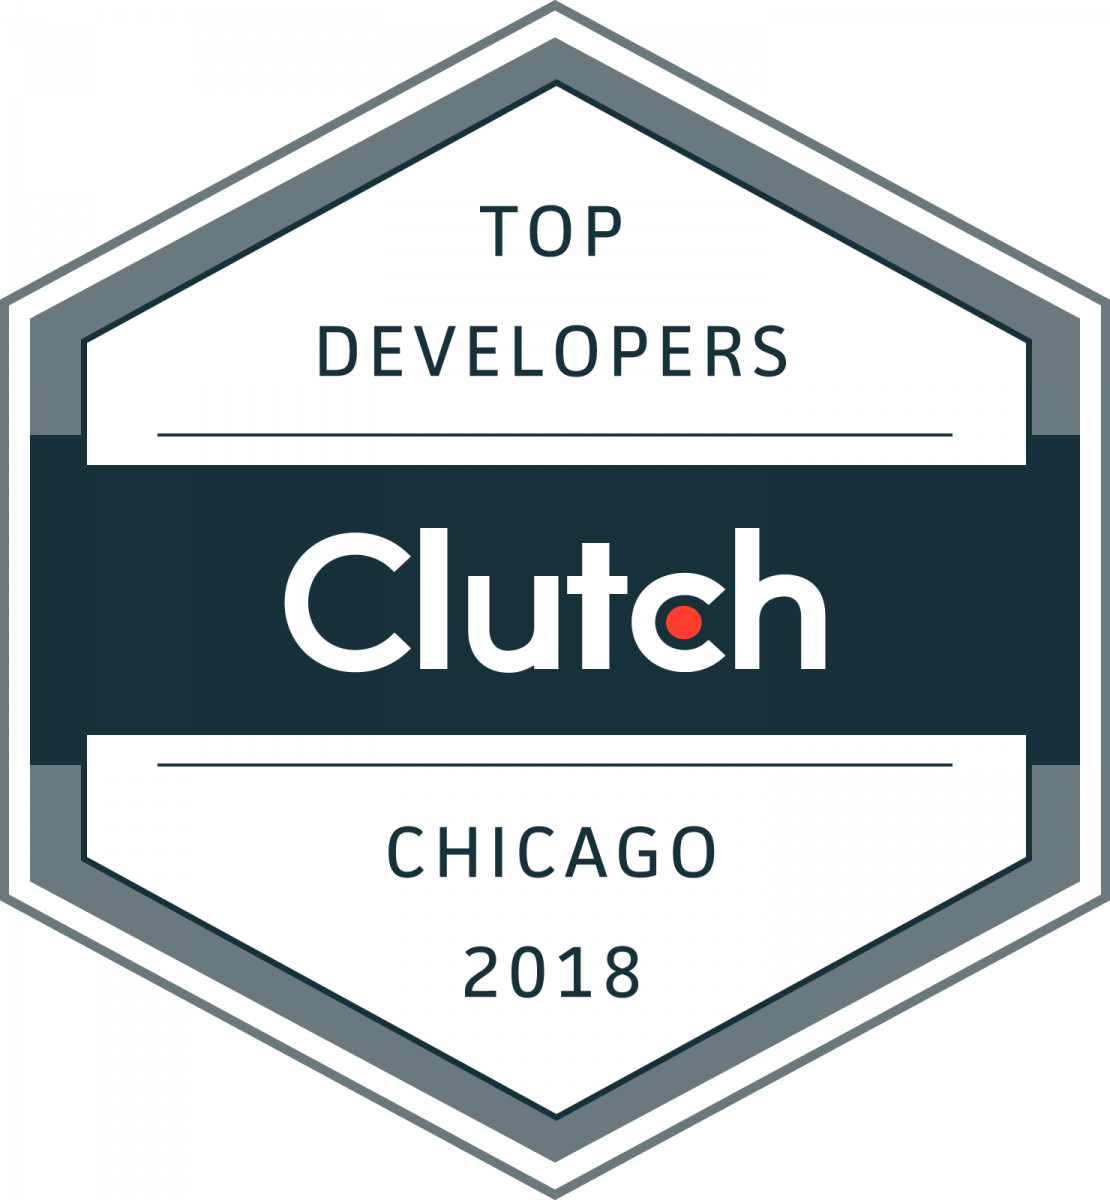 Chicago Developers Badge